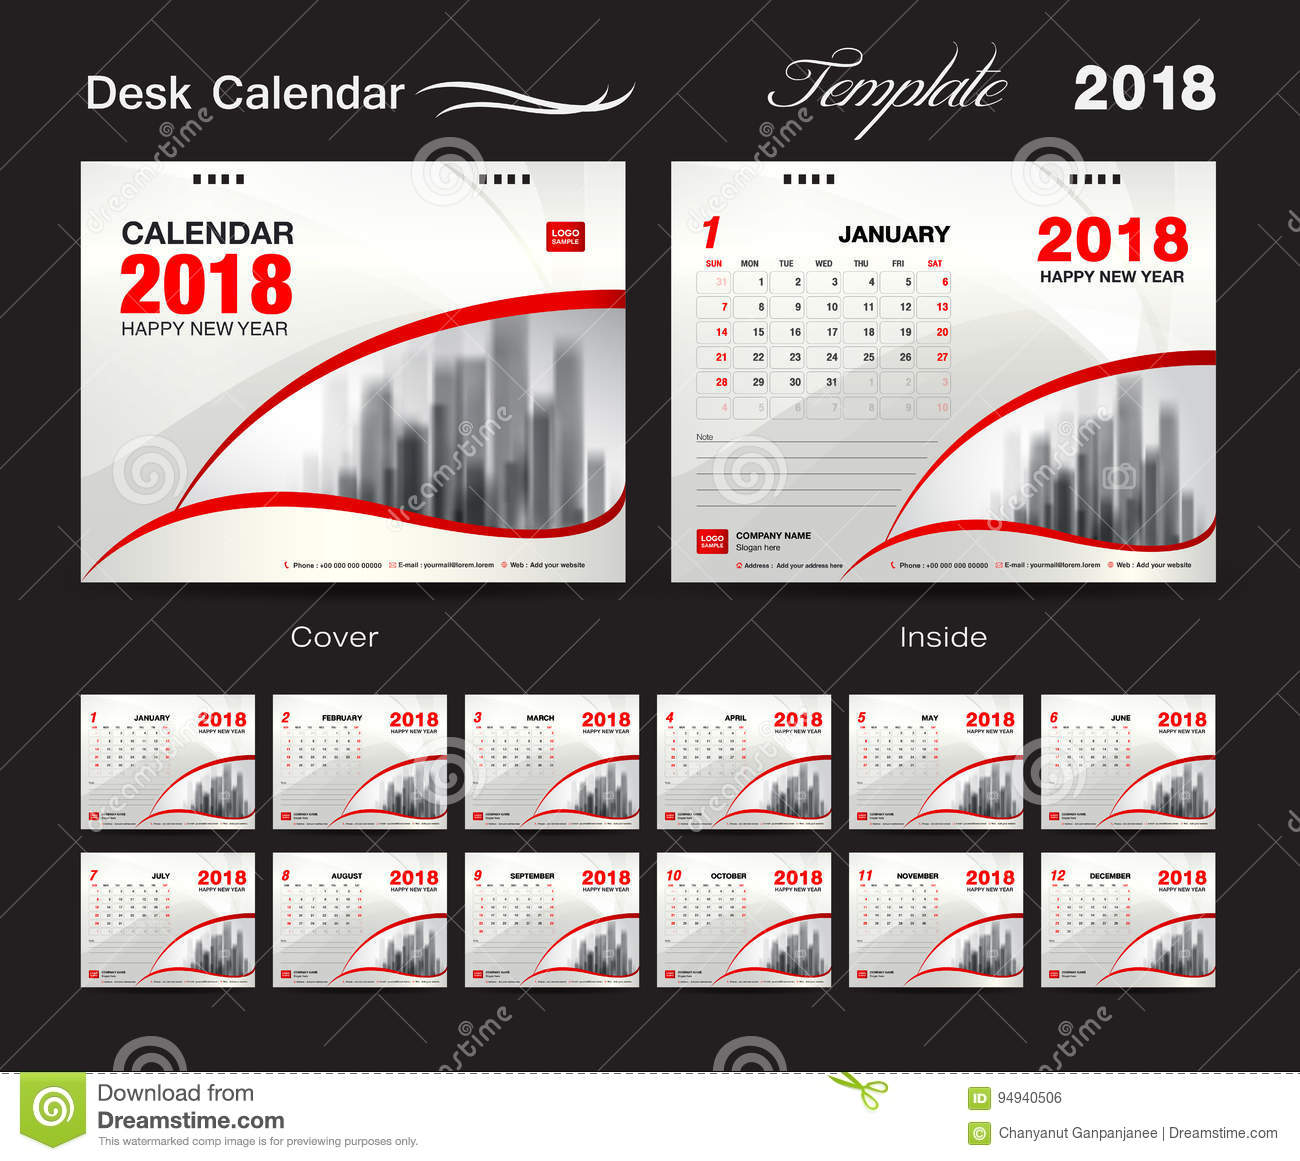 Calendar Cover 2018 : Desk calendar template design red cover set of